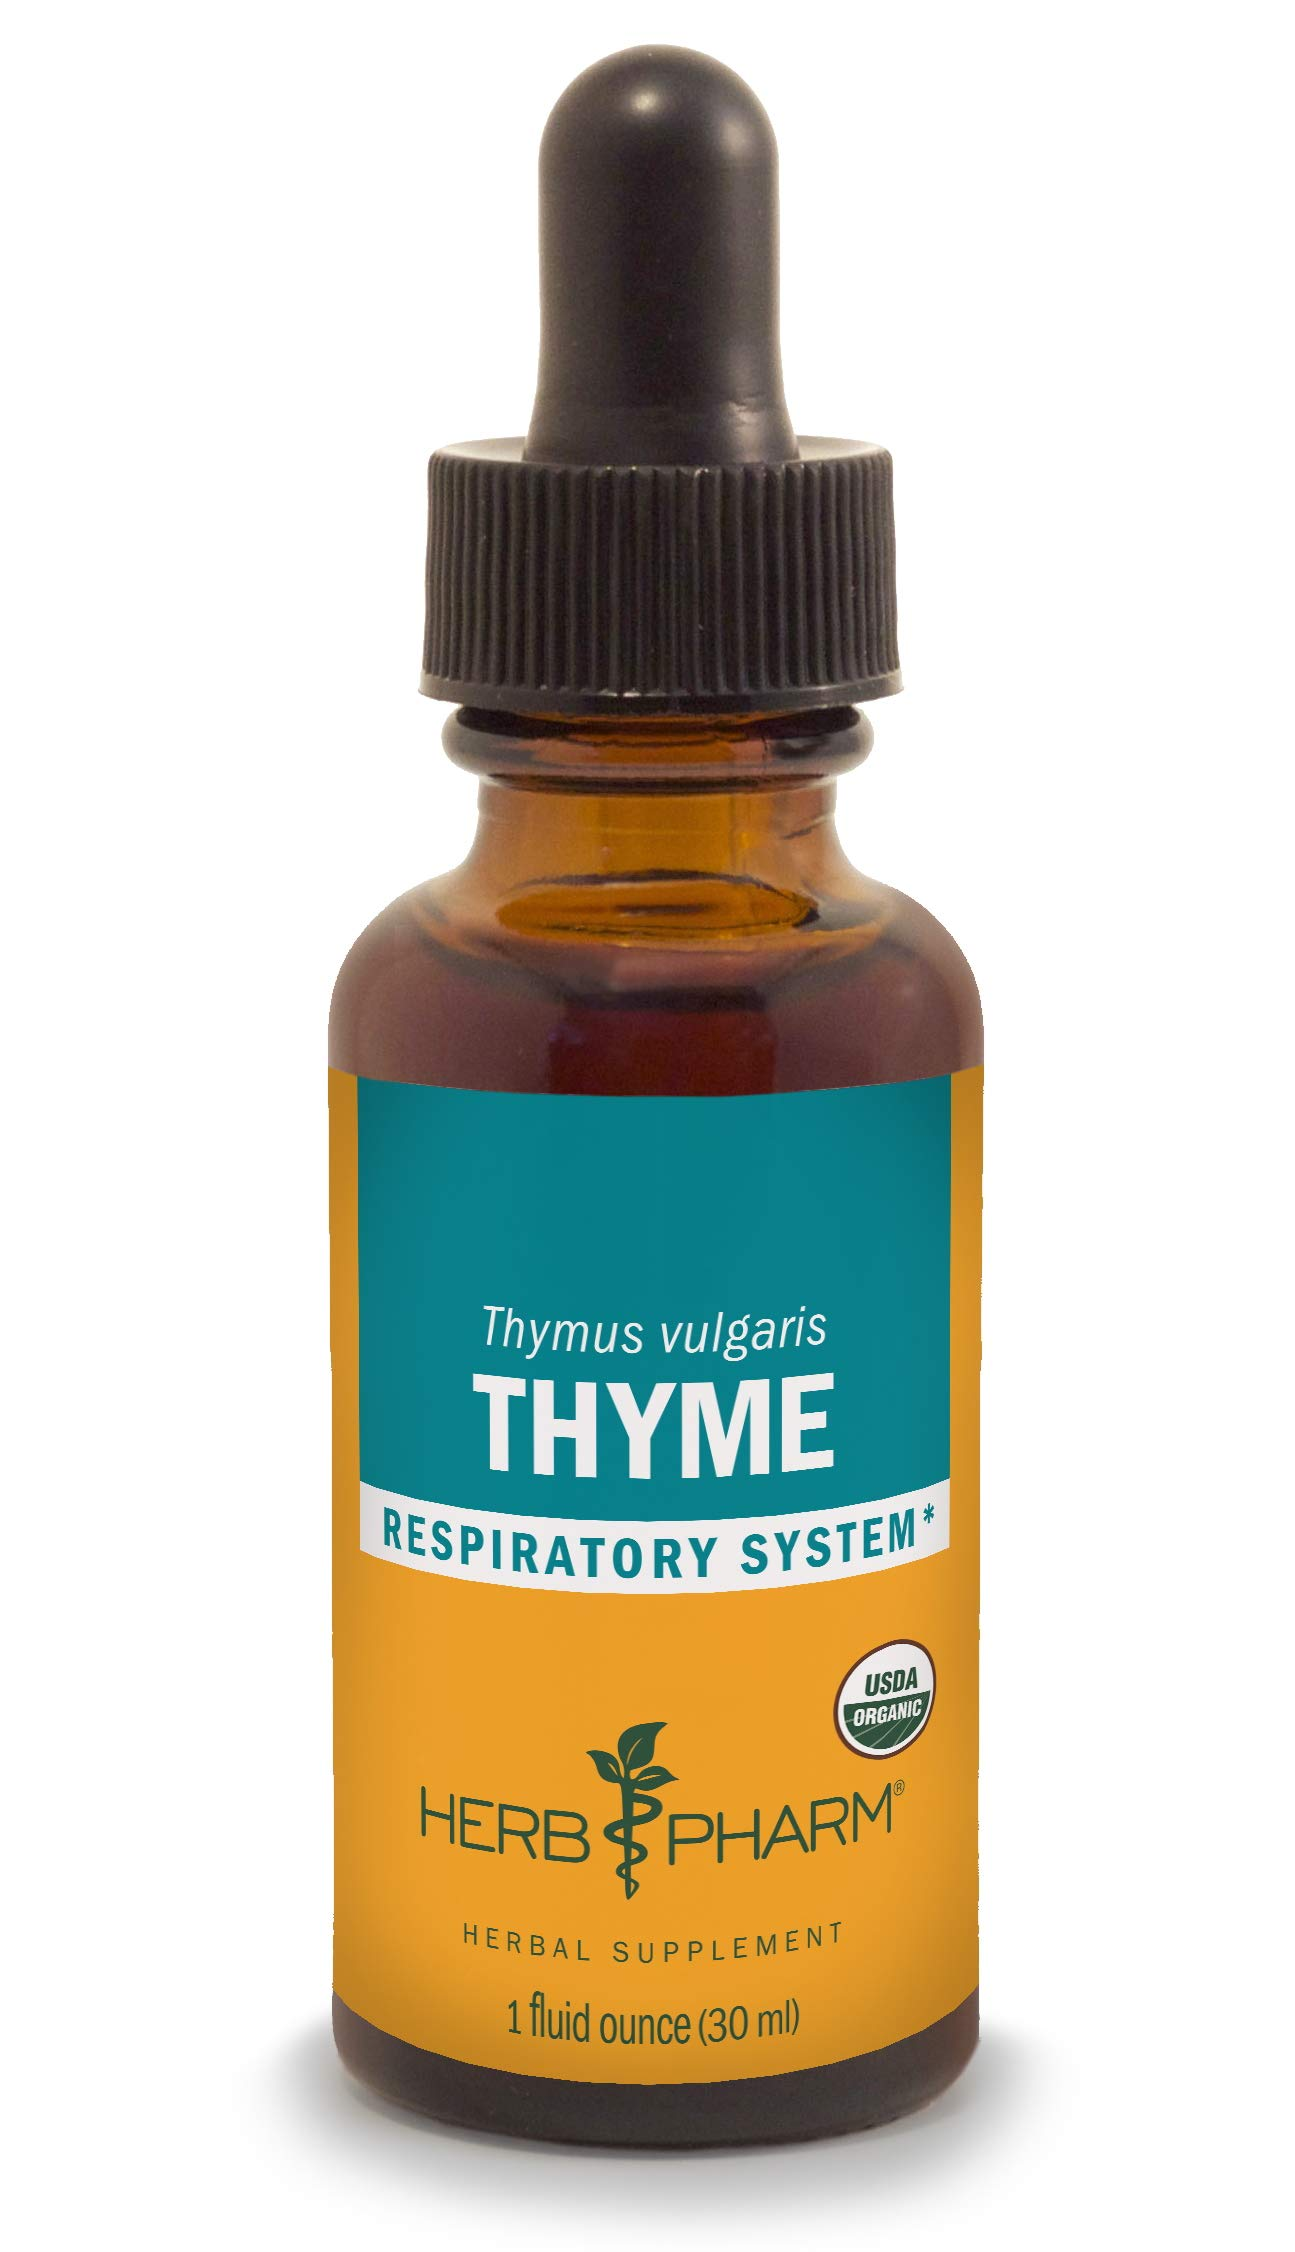 Herb Pharm Certified Organic Thyme Liquid Extract for Respiratory System Support - 1 Ounce by Herb Pharm